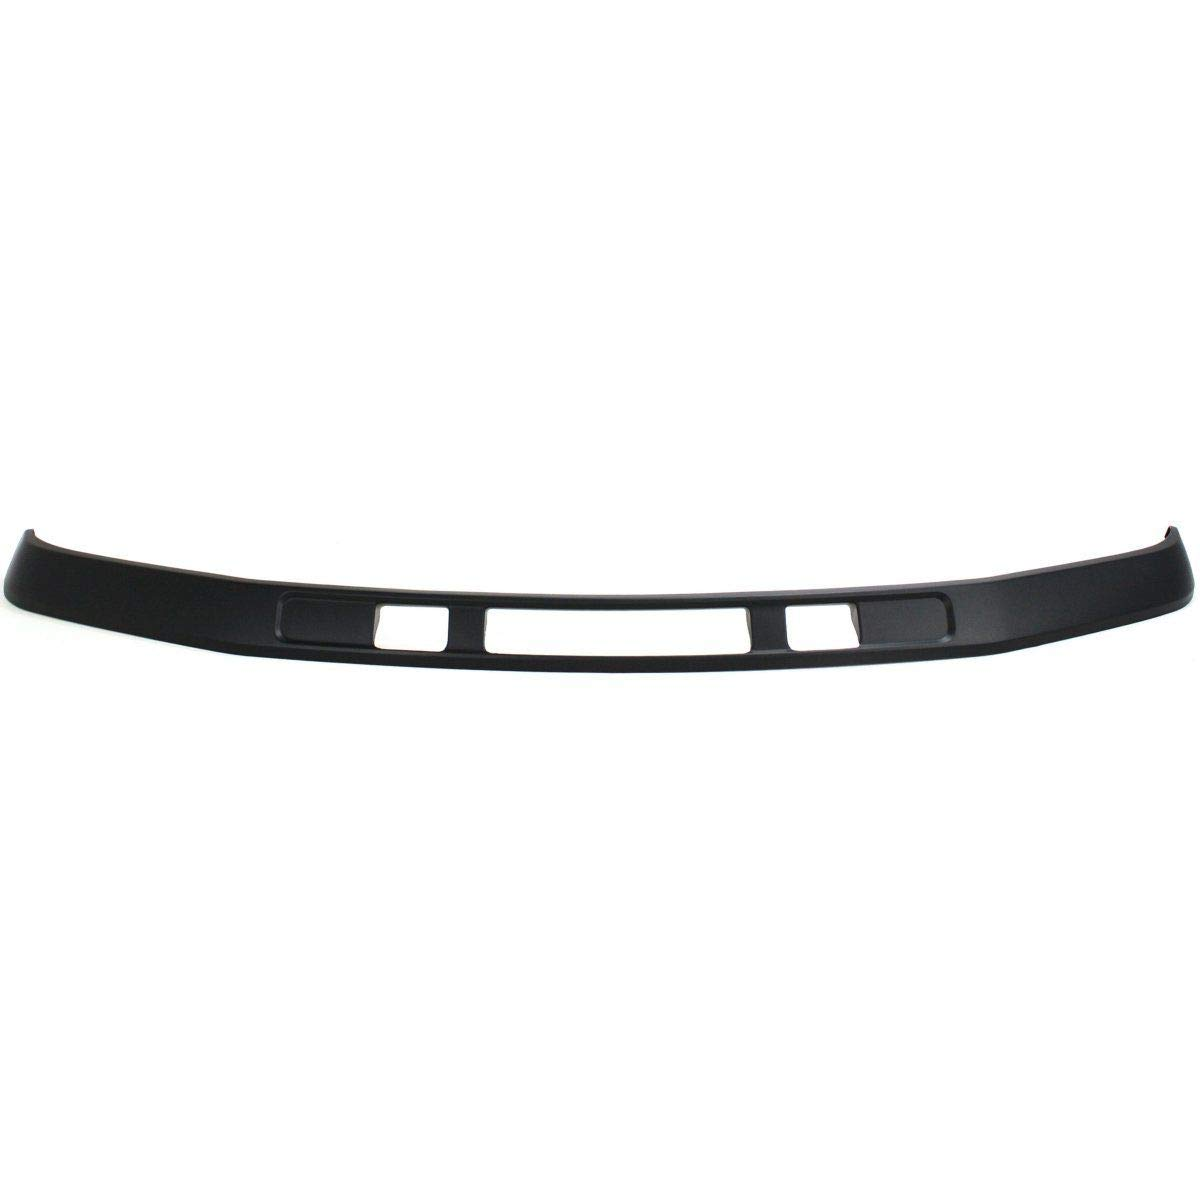 New Front Lower Valance For 2005-2007 F-Series Super Duty Textured FO1095219C CAPA Panel